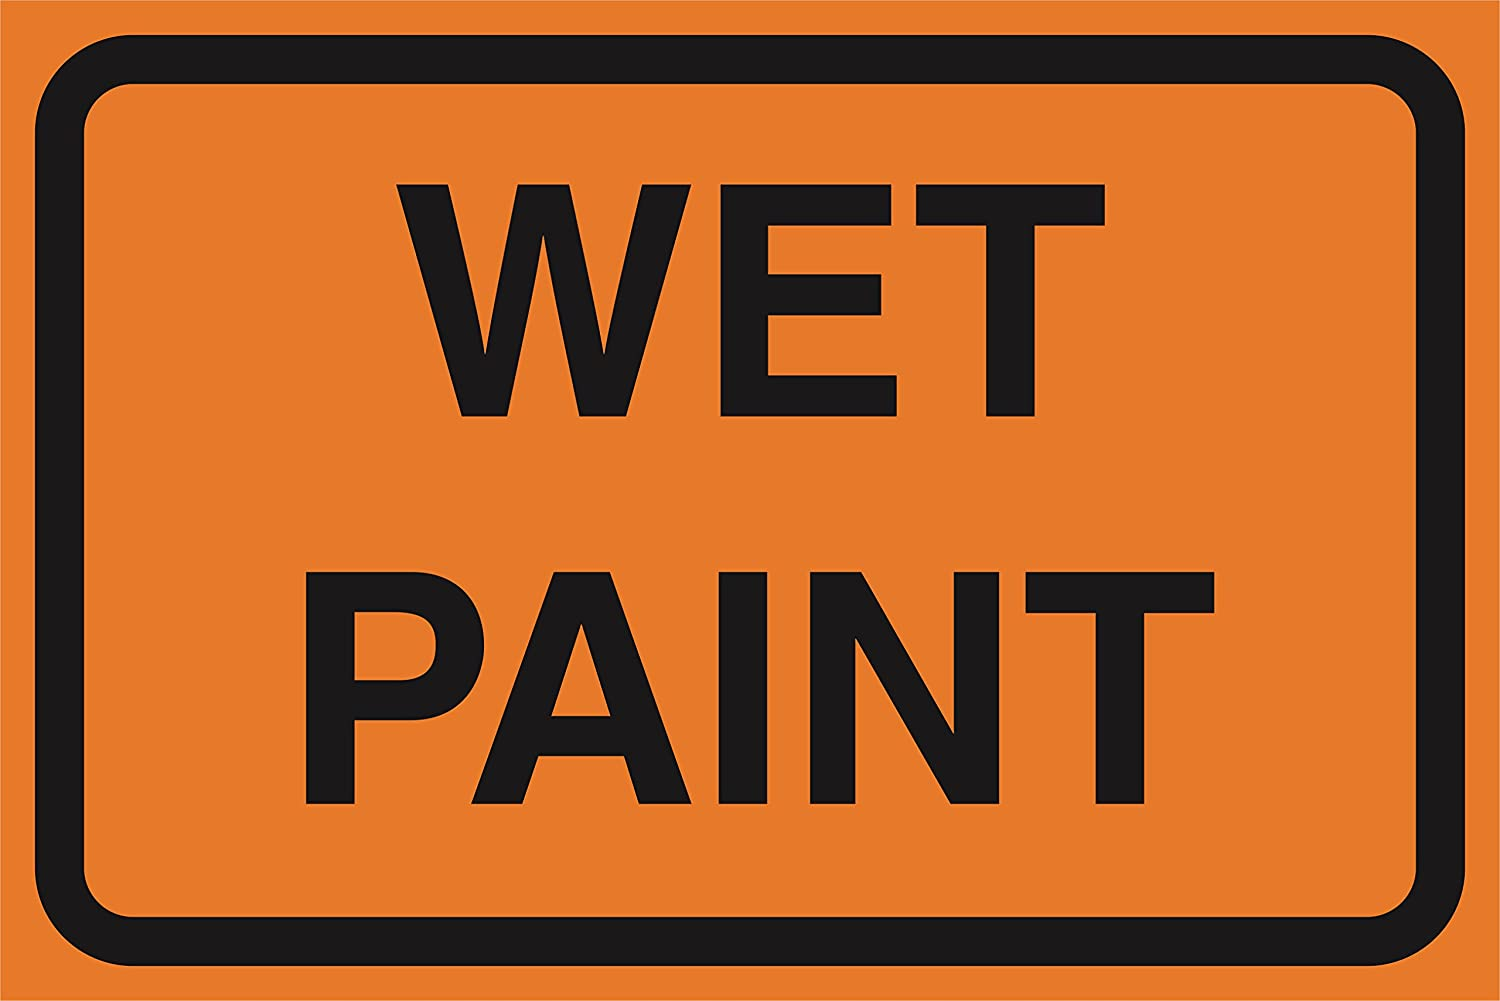 Wet Paint Orange Road Street Construction Area Work Zone Safety Notice Warning Business Signs Commercial Metal Aluminum Sign